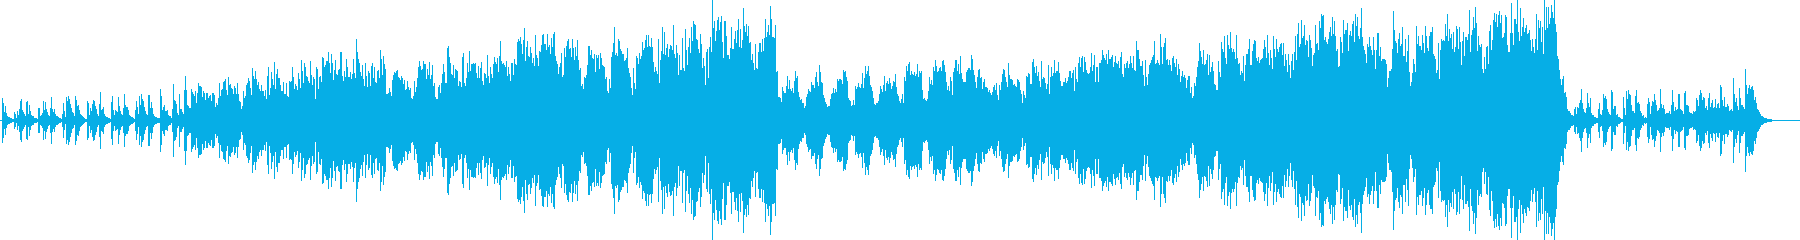 Spectacular scale bright and fun orchestra song's reproduced waveform